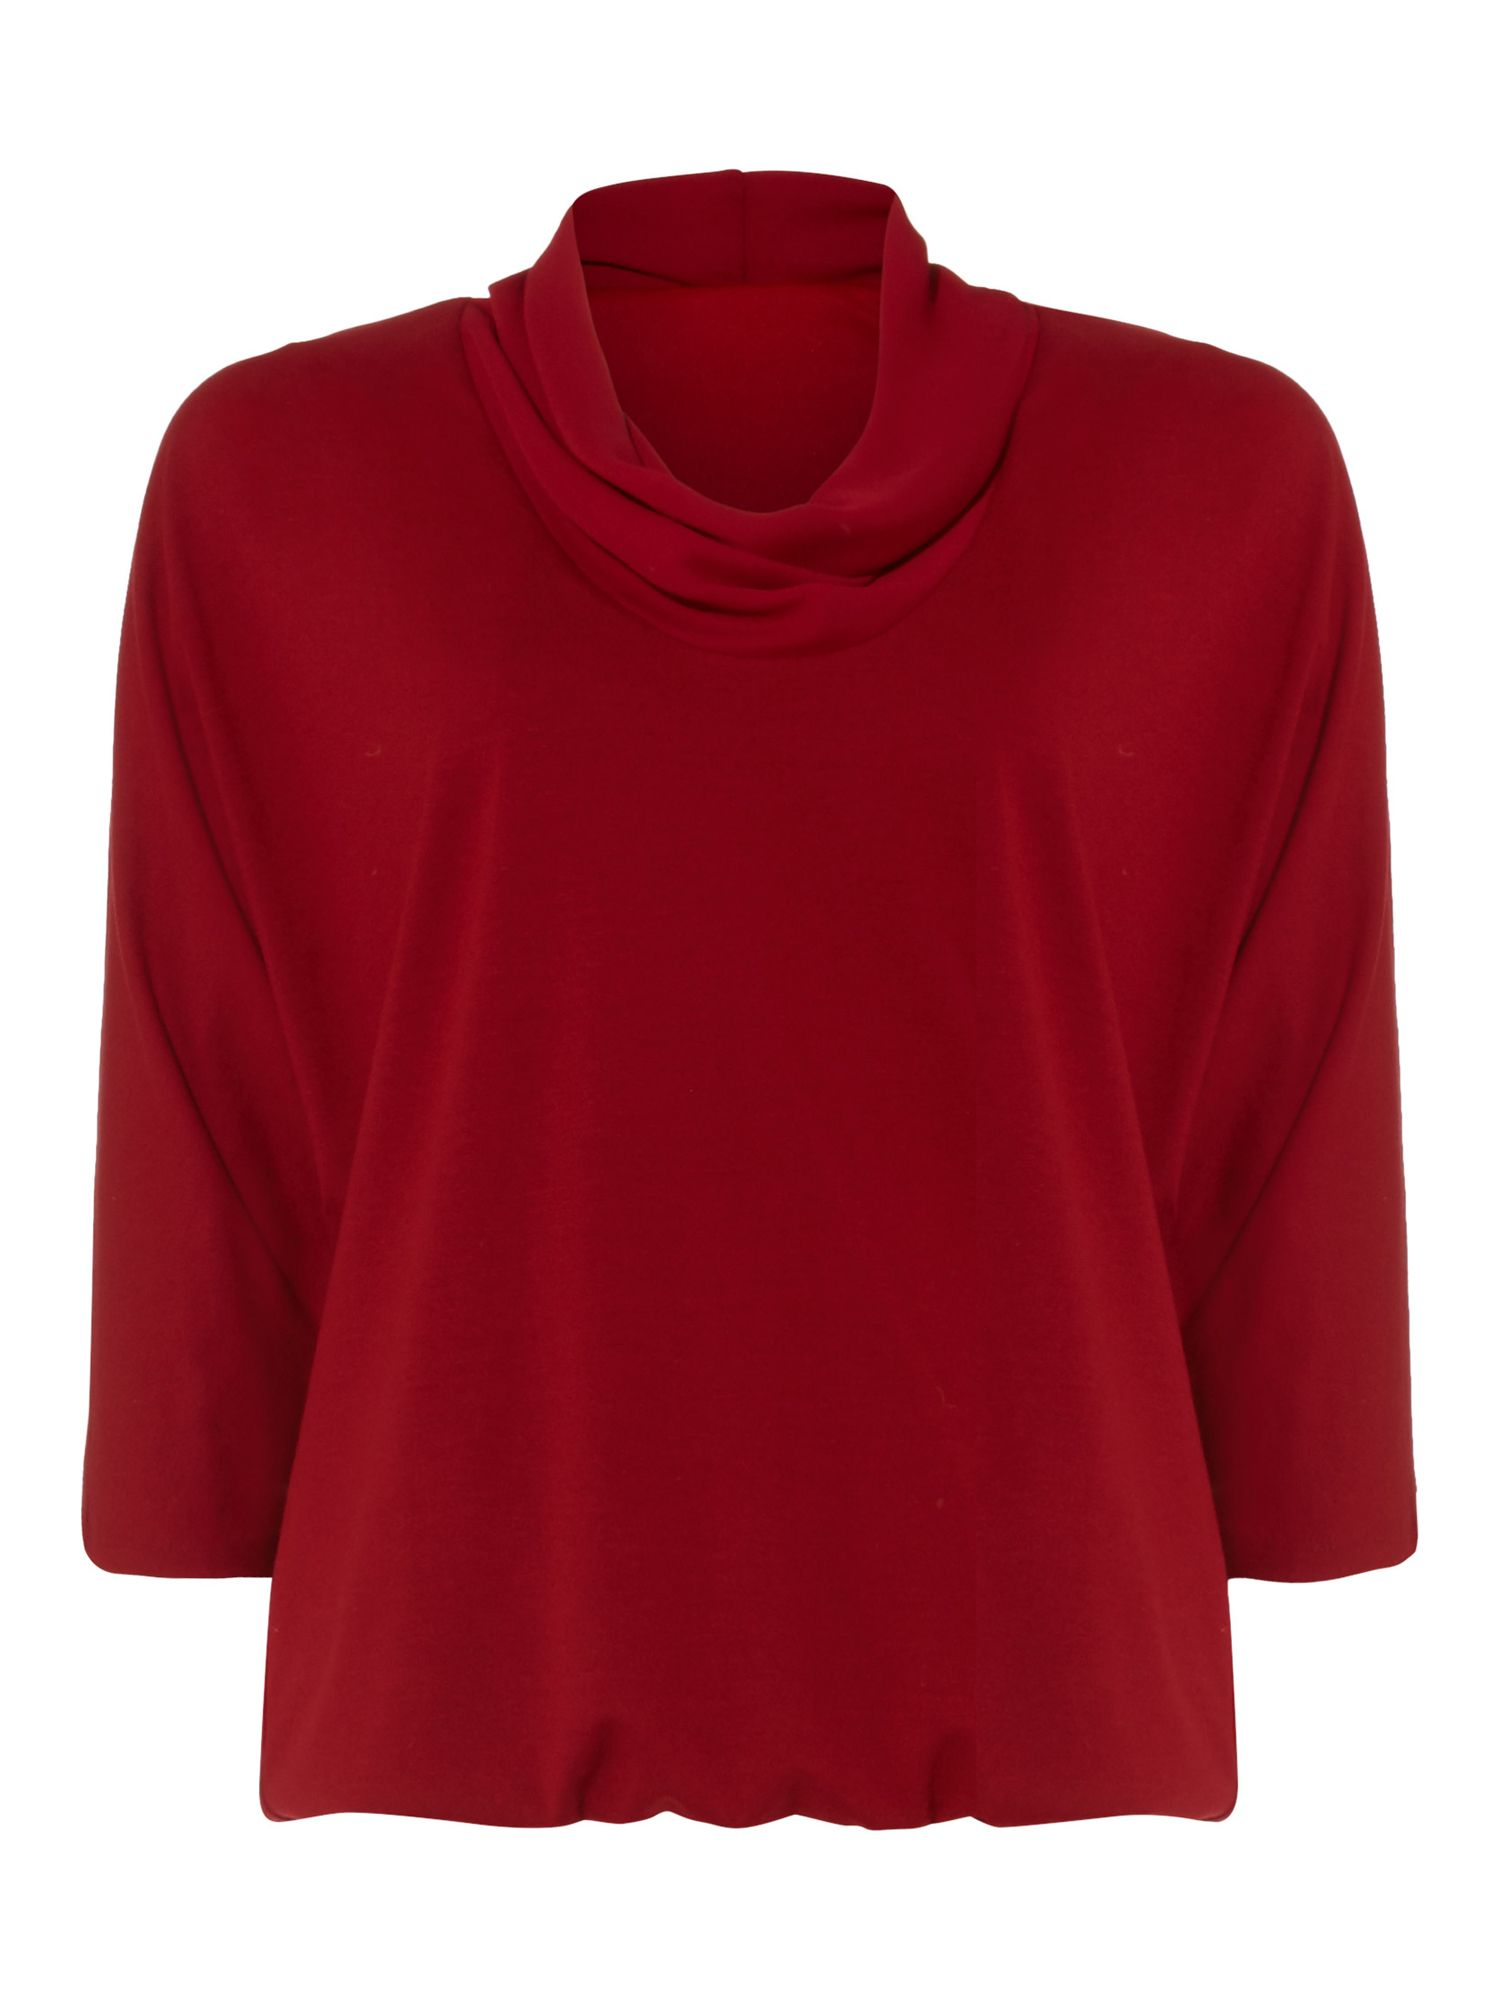 Damsel in a Dress Tokyo Jersey Top, Red